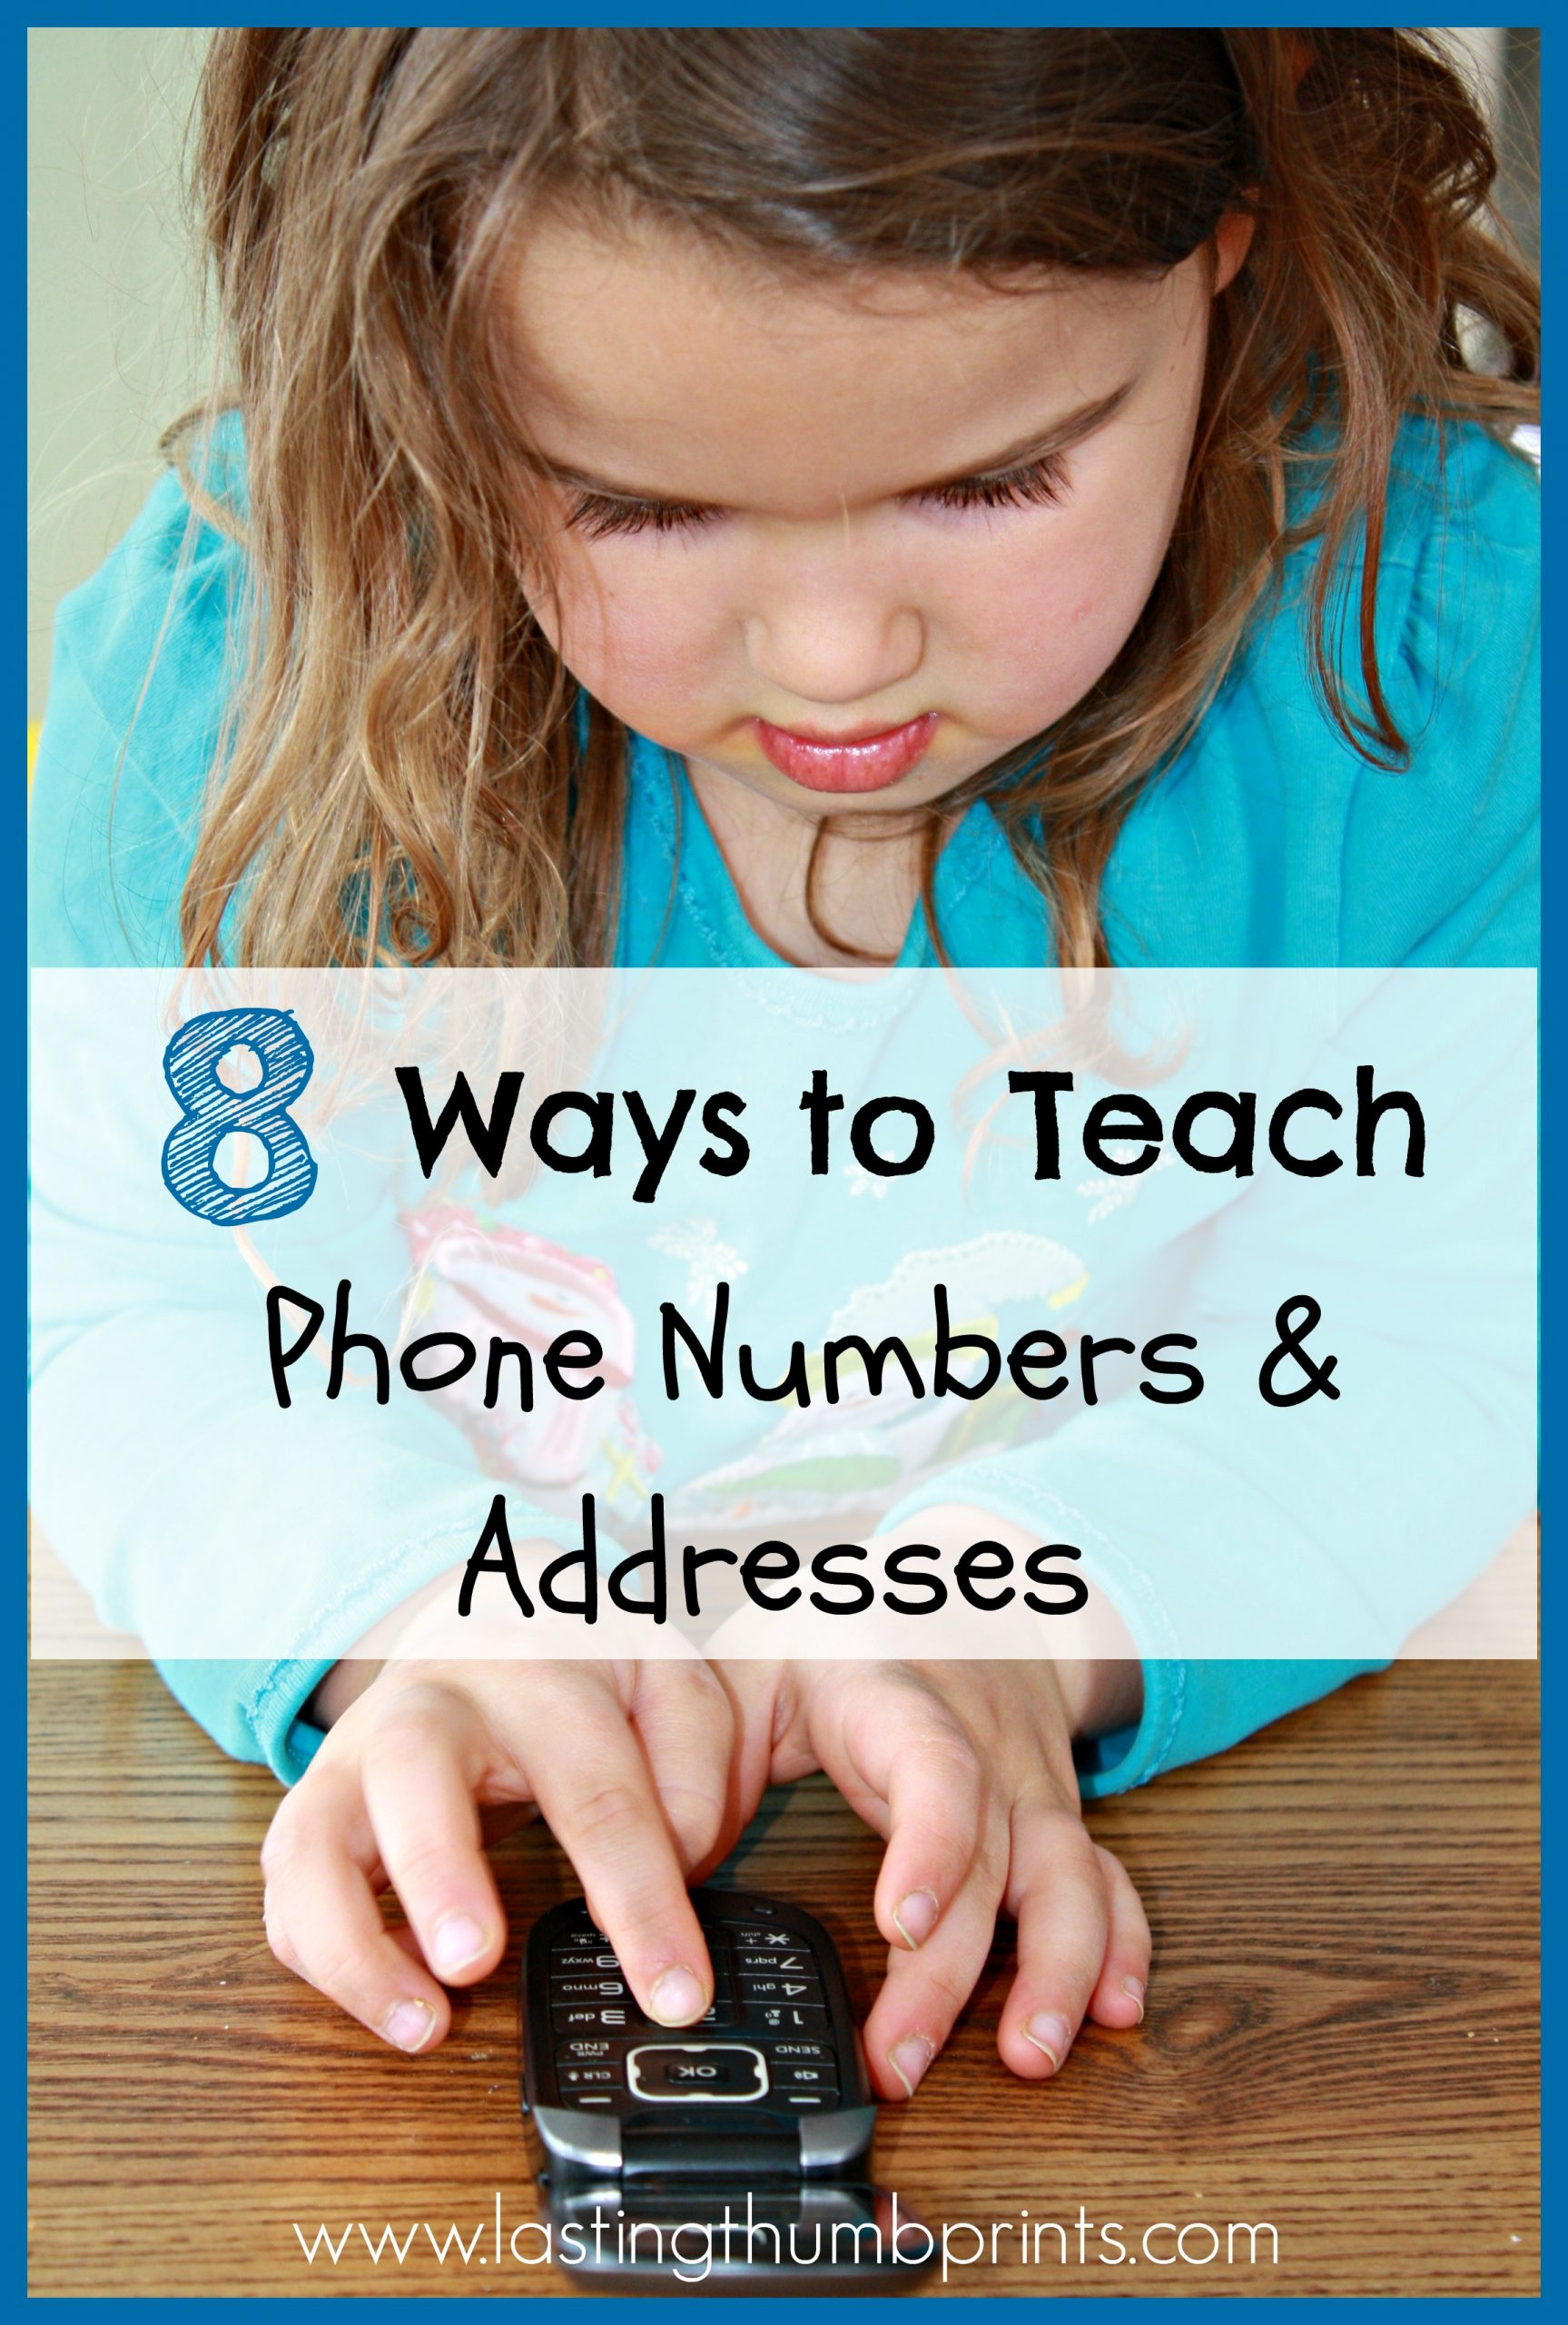 Address and Phone Number Worksheet 8 Ways to Teach Children their Address and Phone Number